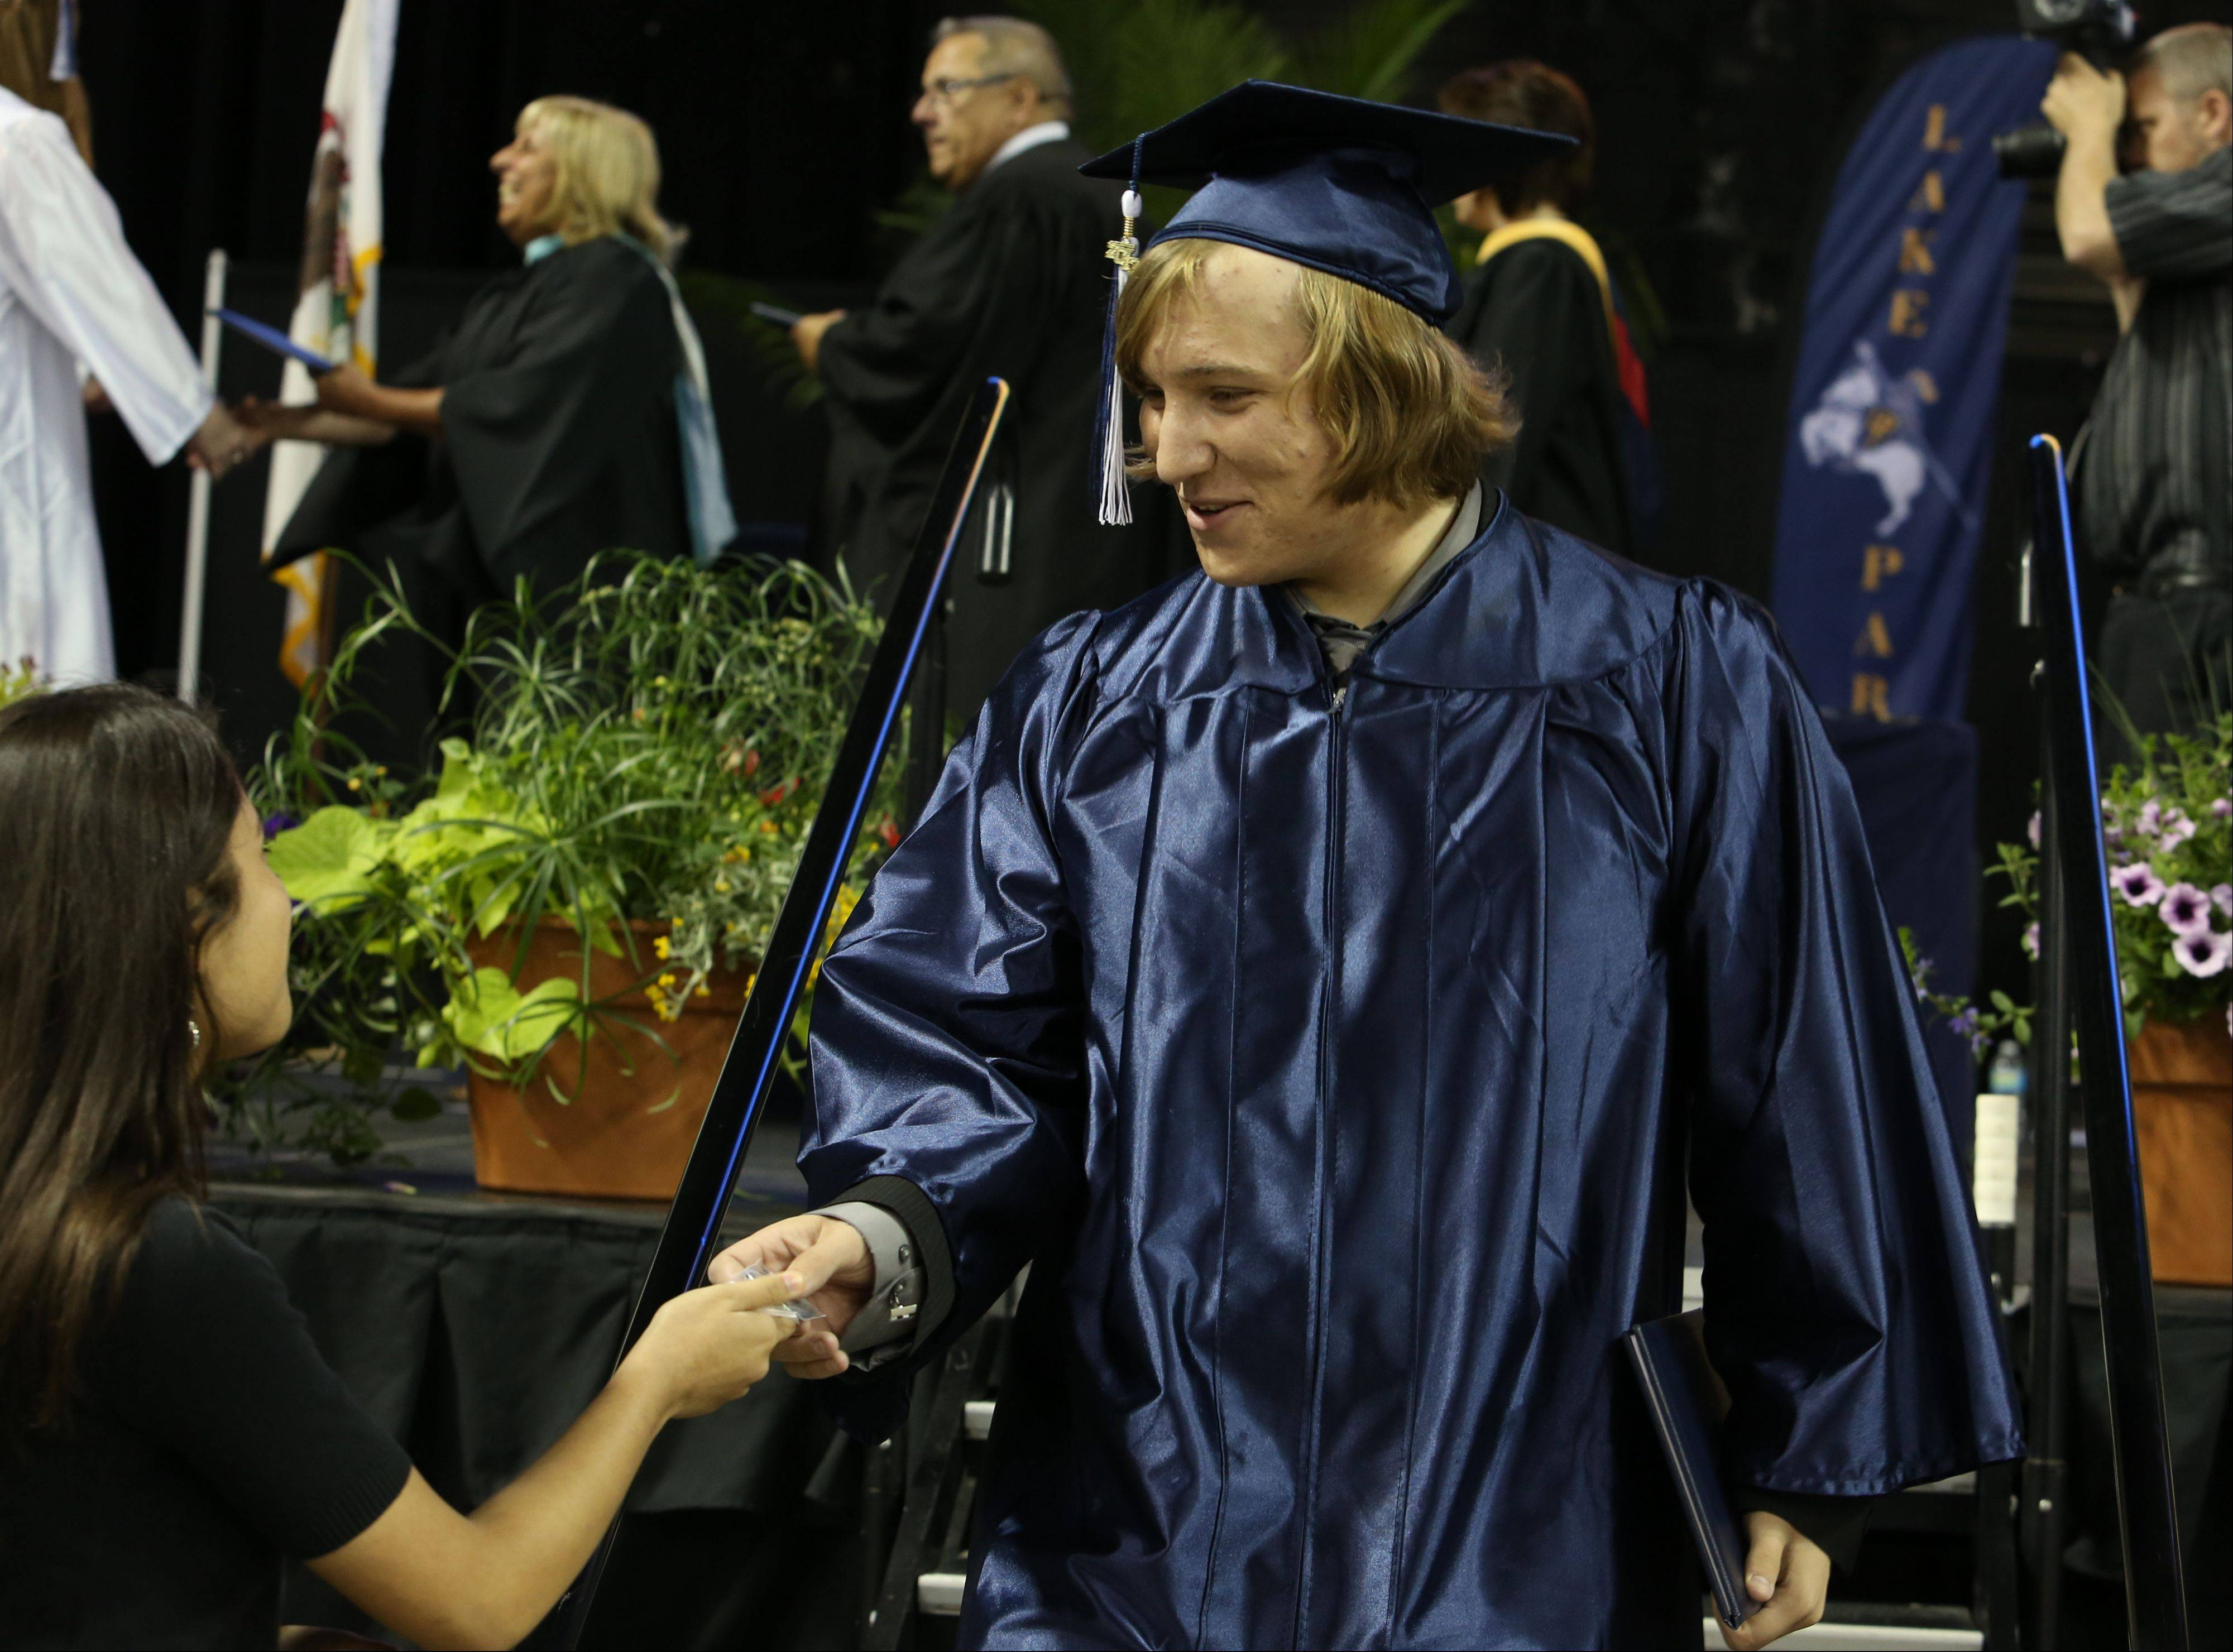 Images from the Lake Park High School graduation on Monday, June 3 at the Sears Centre in Hoffman Estates.